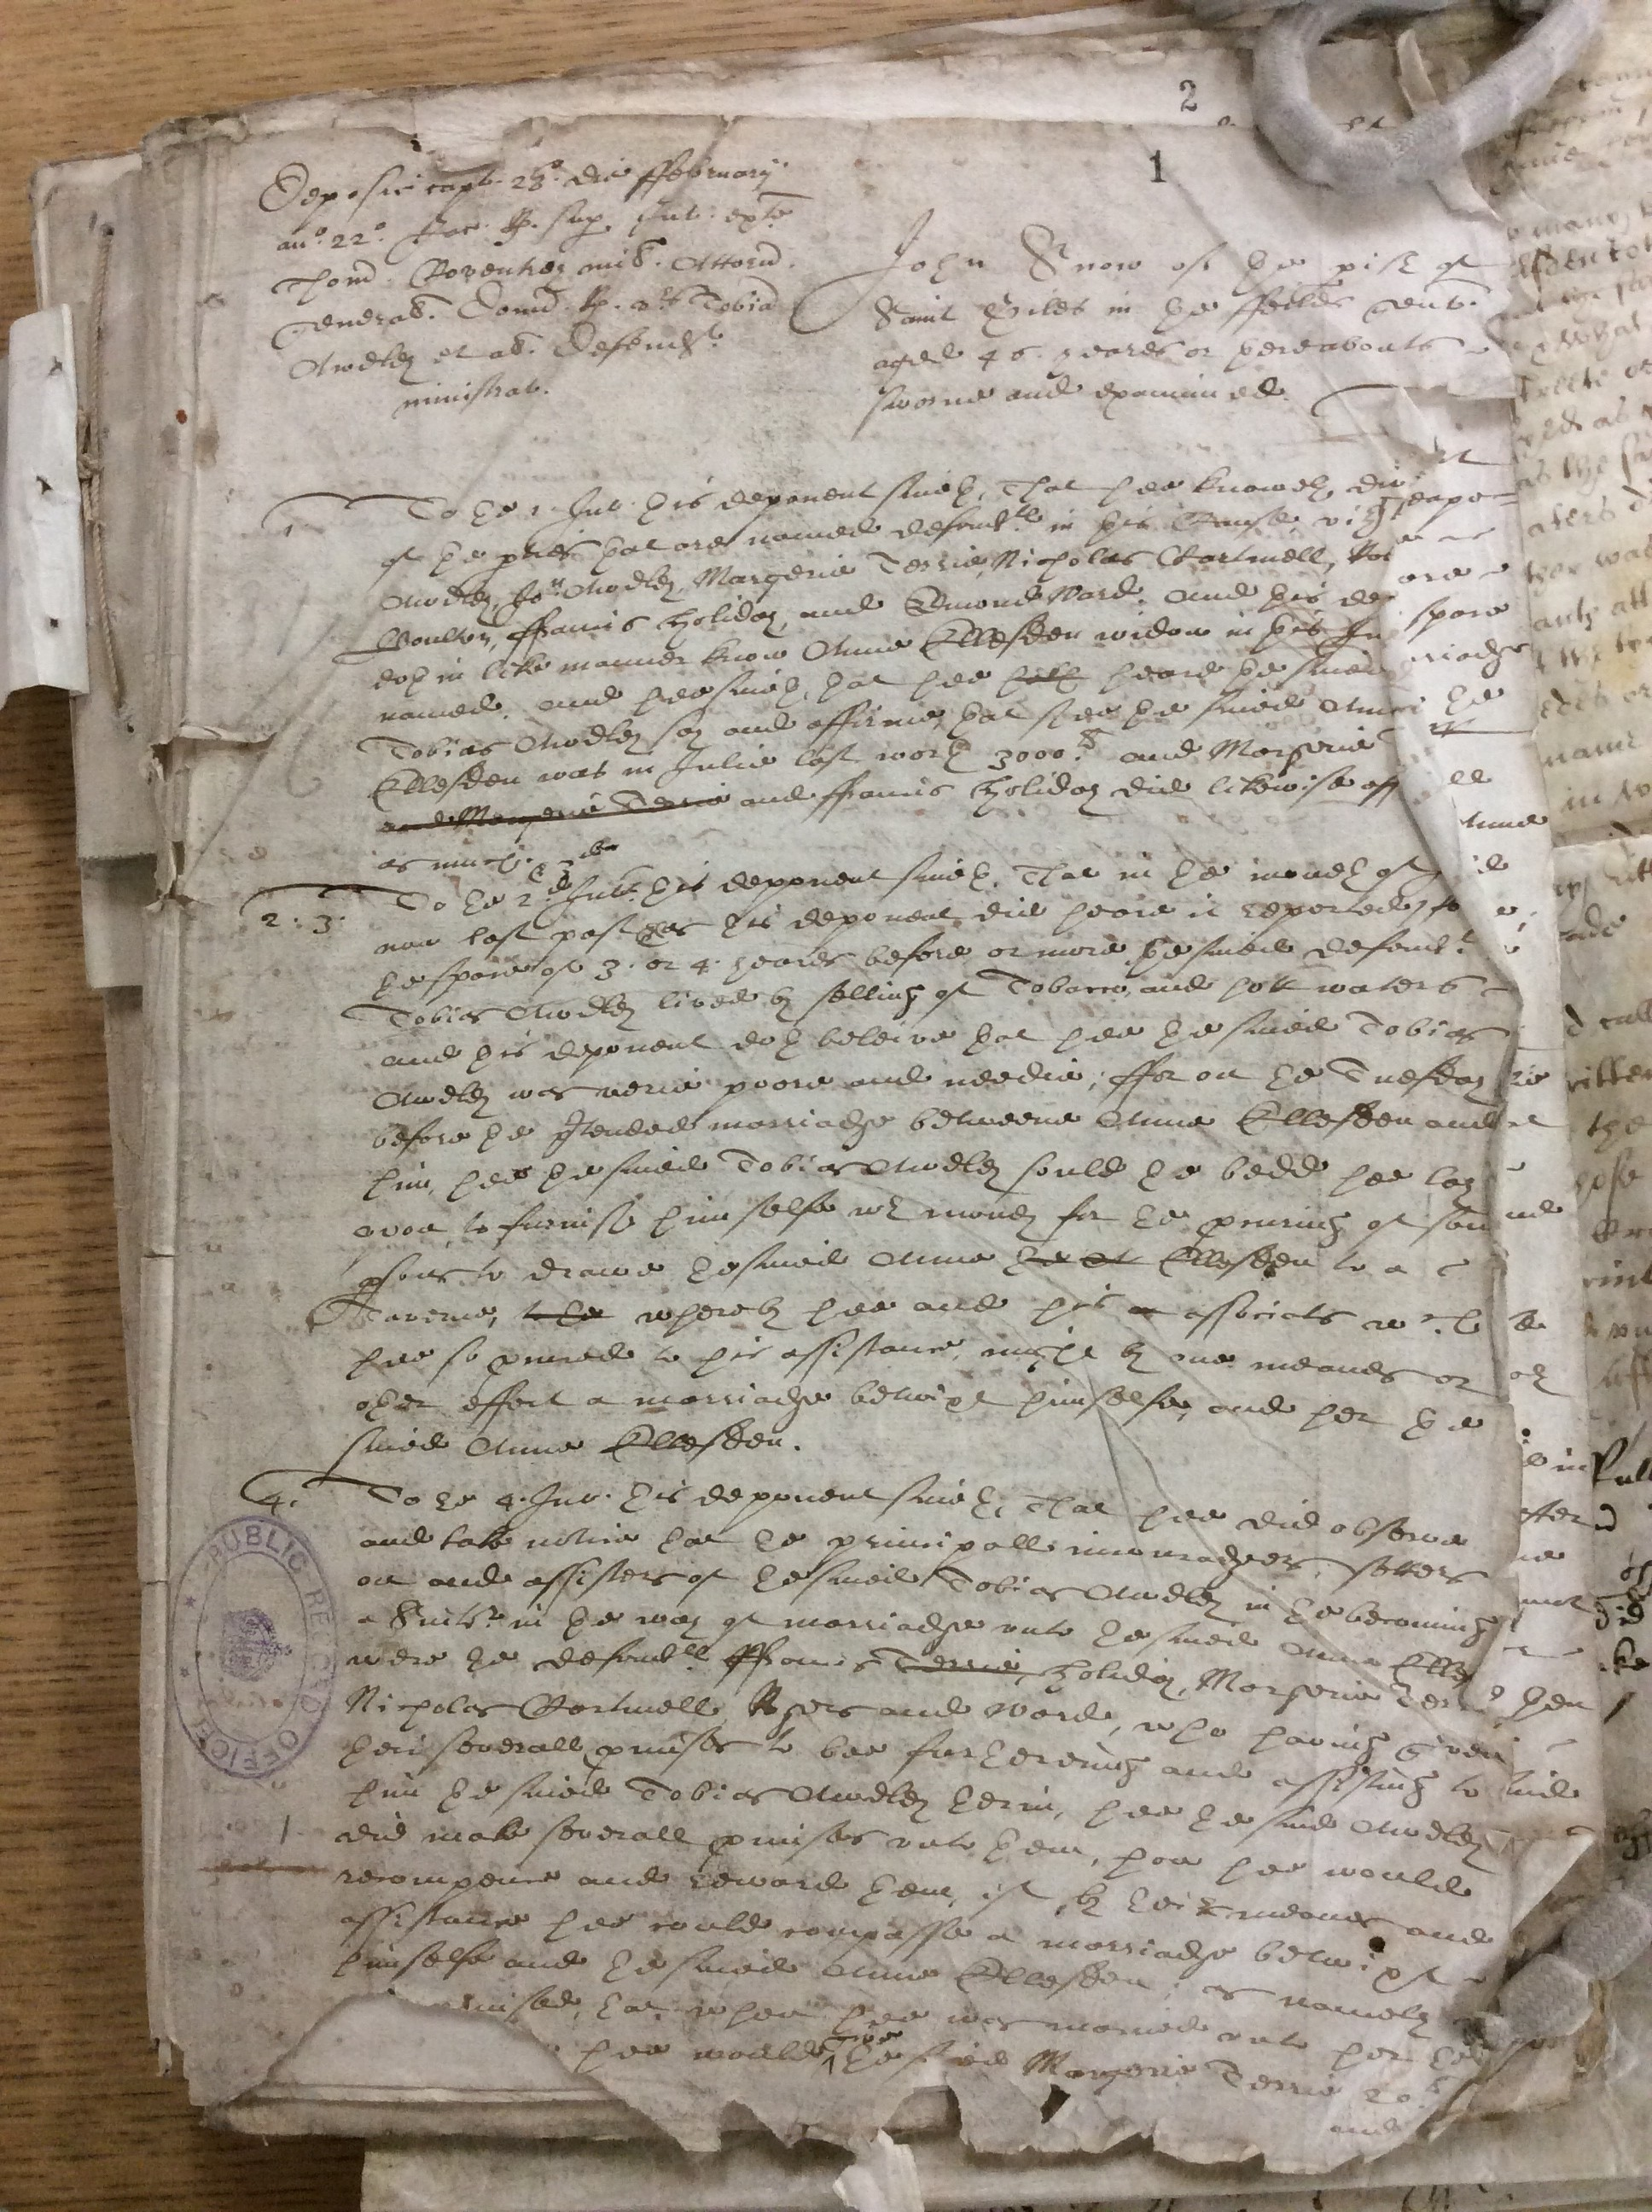 The deposition of John Snowe in one of the lawsuits over the marriage of Anne Elsden and Tobias Audley, one of the documents on which our symposium and workshop scenes drew. The National Archives, STAC 8/13/16 [link: http://discovery.nationalarchives.gov.uk/details/r/C5568370]. We are very grateful to Lauren Cantos, Kim Gilchrist, Jennifer Hardy, Suzanne Lawrence, Miranda Fay Thomas and Jennifer Young for helping us to prepare transcriptions of the lawsuits